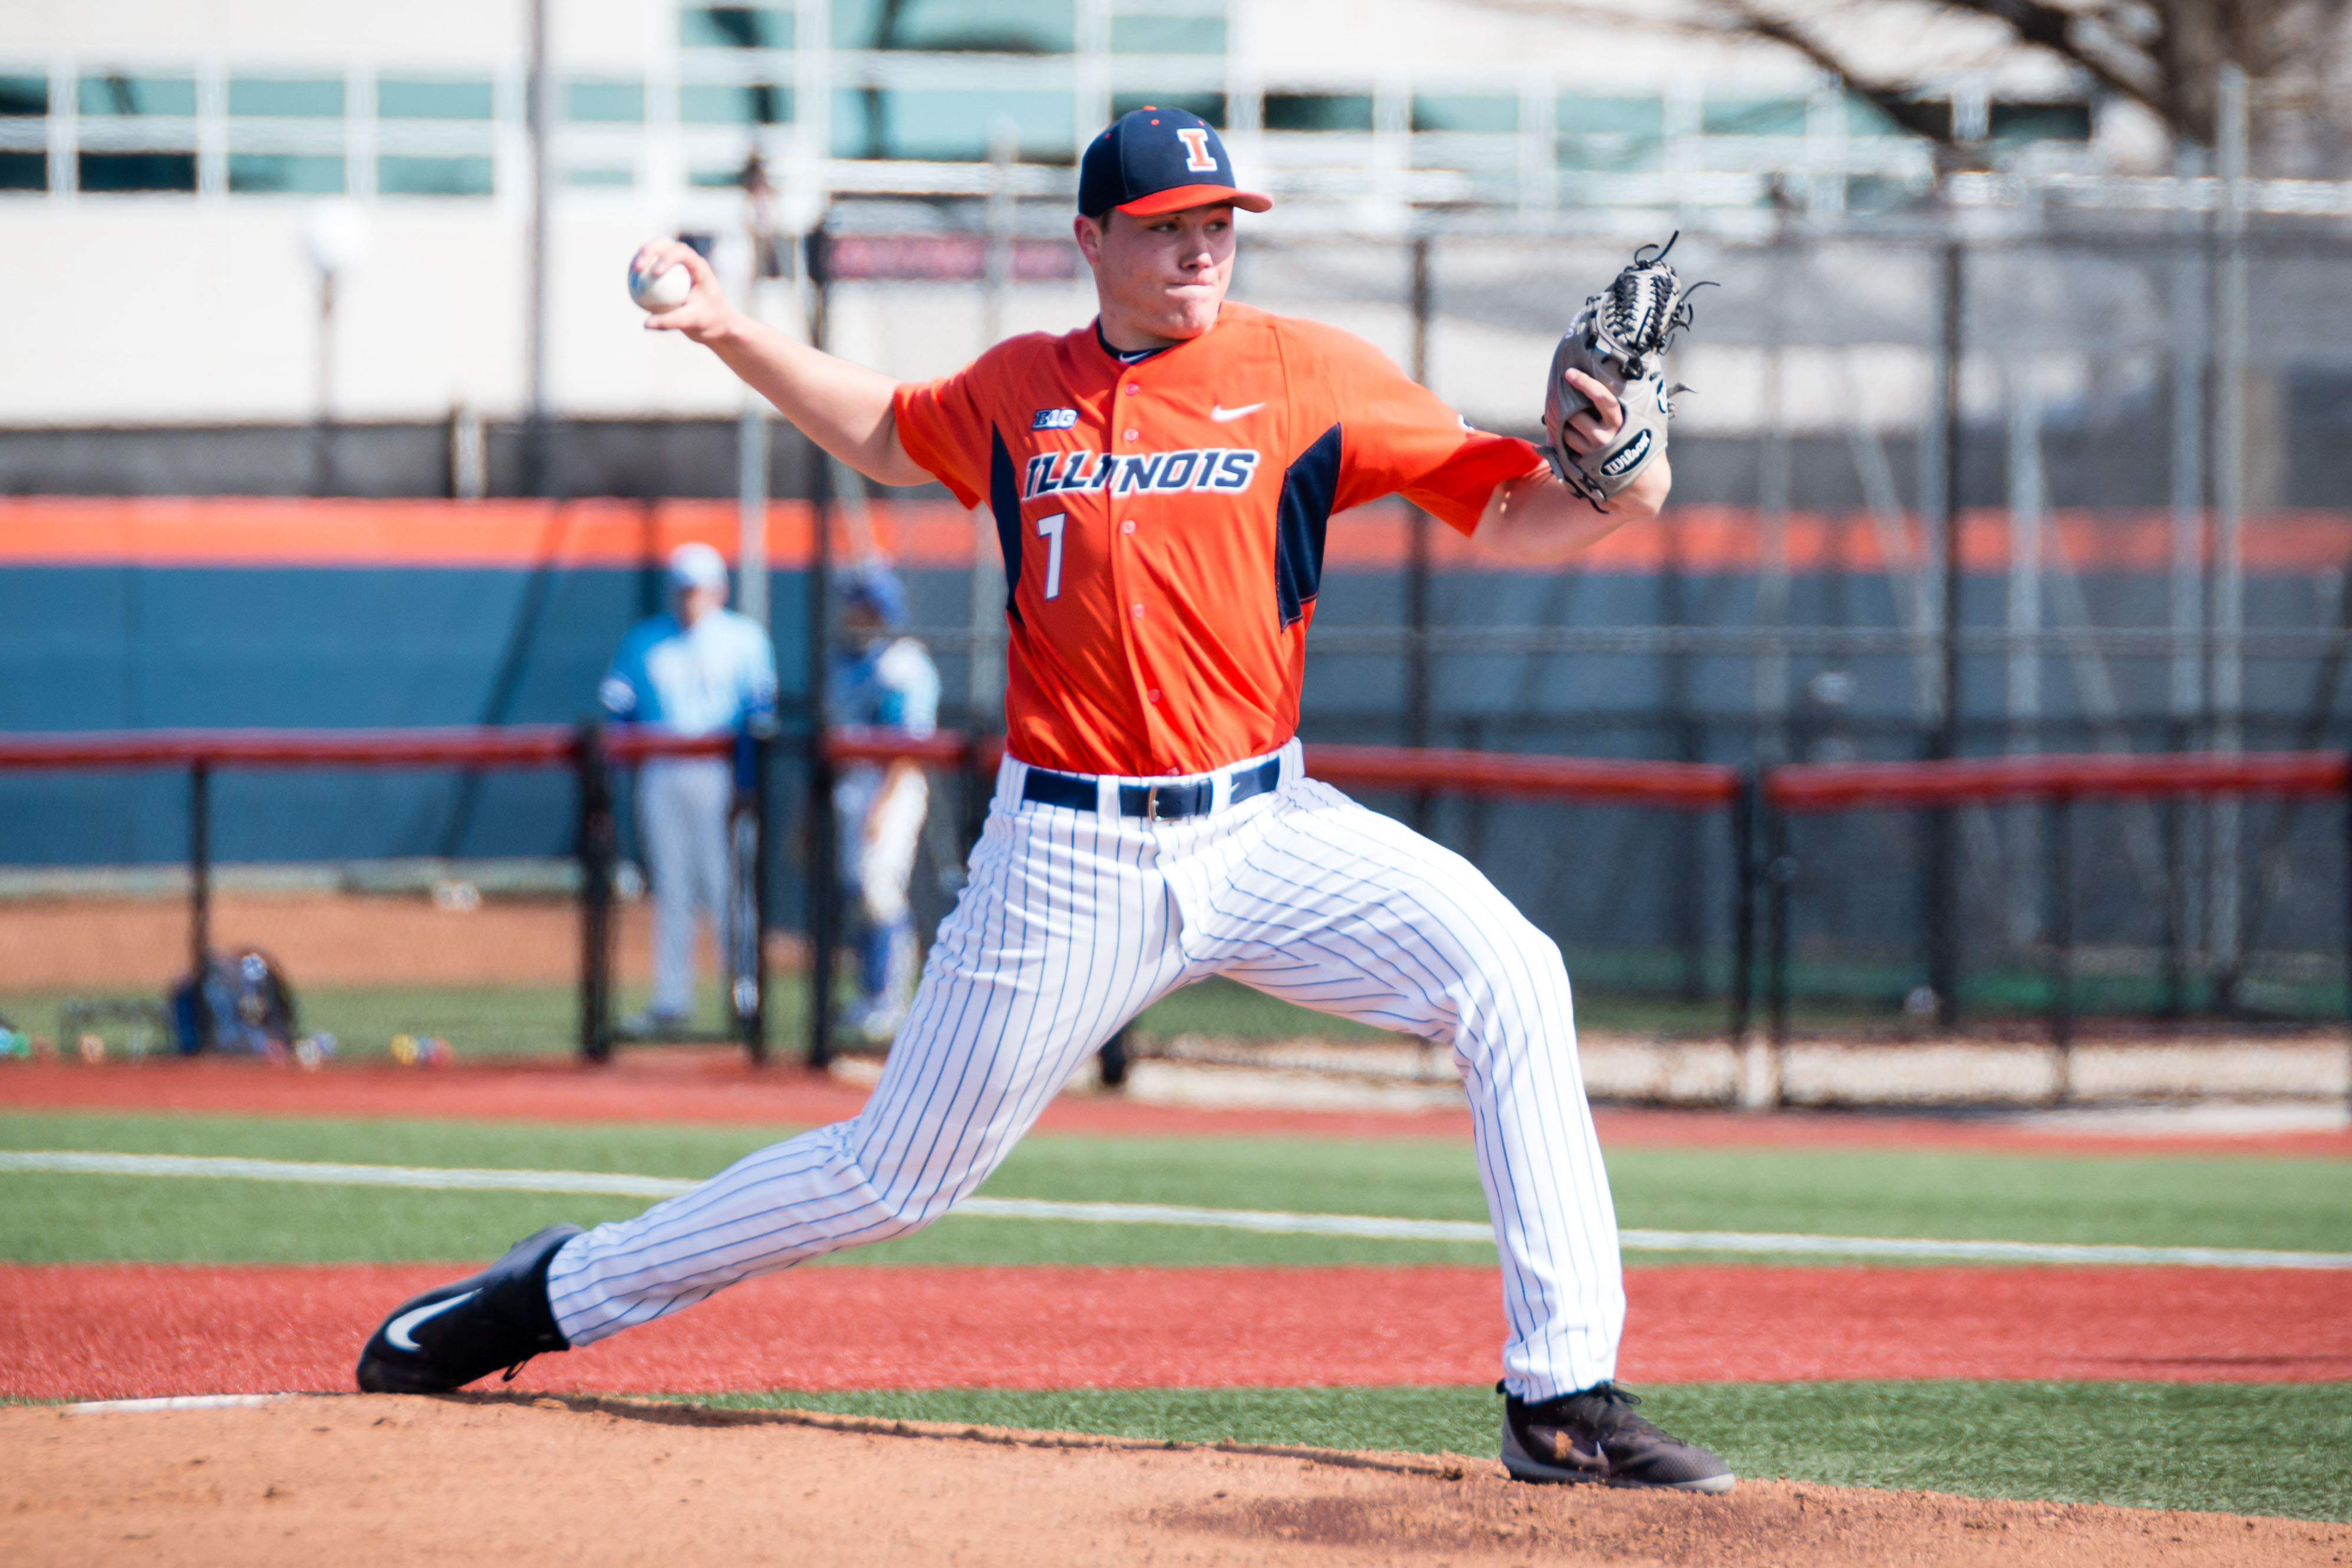 Illinois starting pitcher Ty Weber (7) delivers the pitch during the game against Indiana State at Illinois Field on Saturday, April 1.